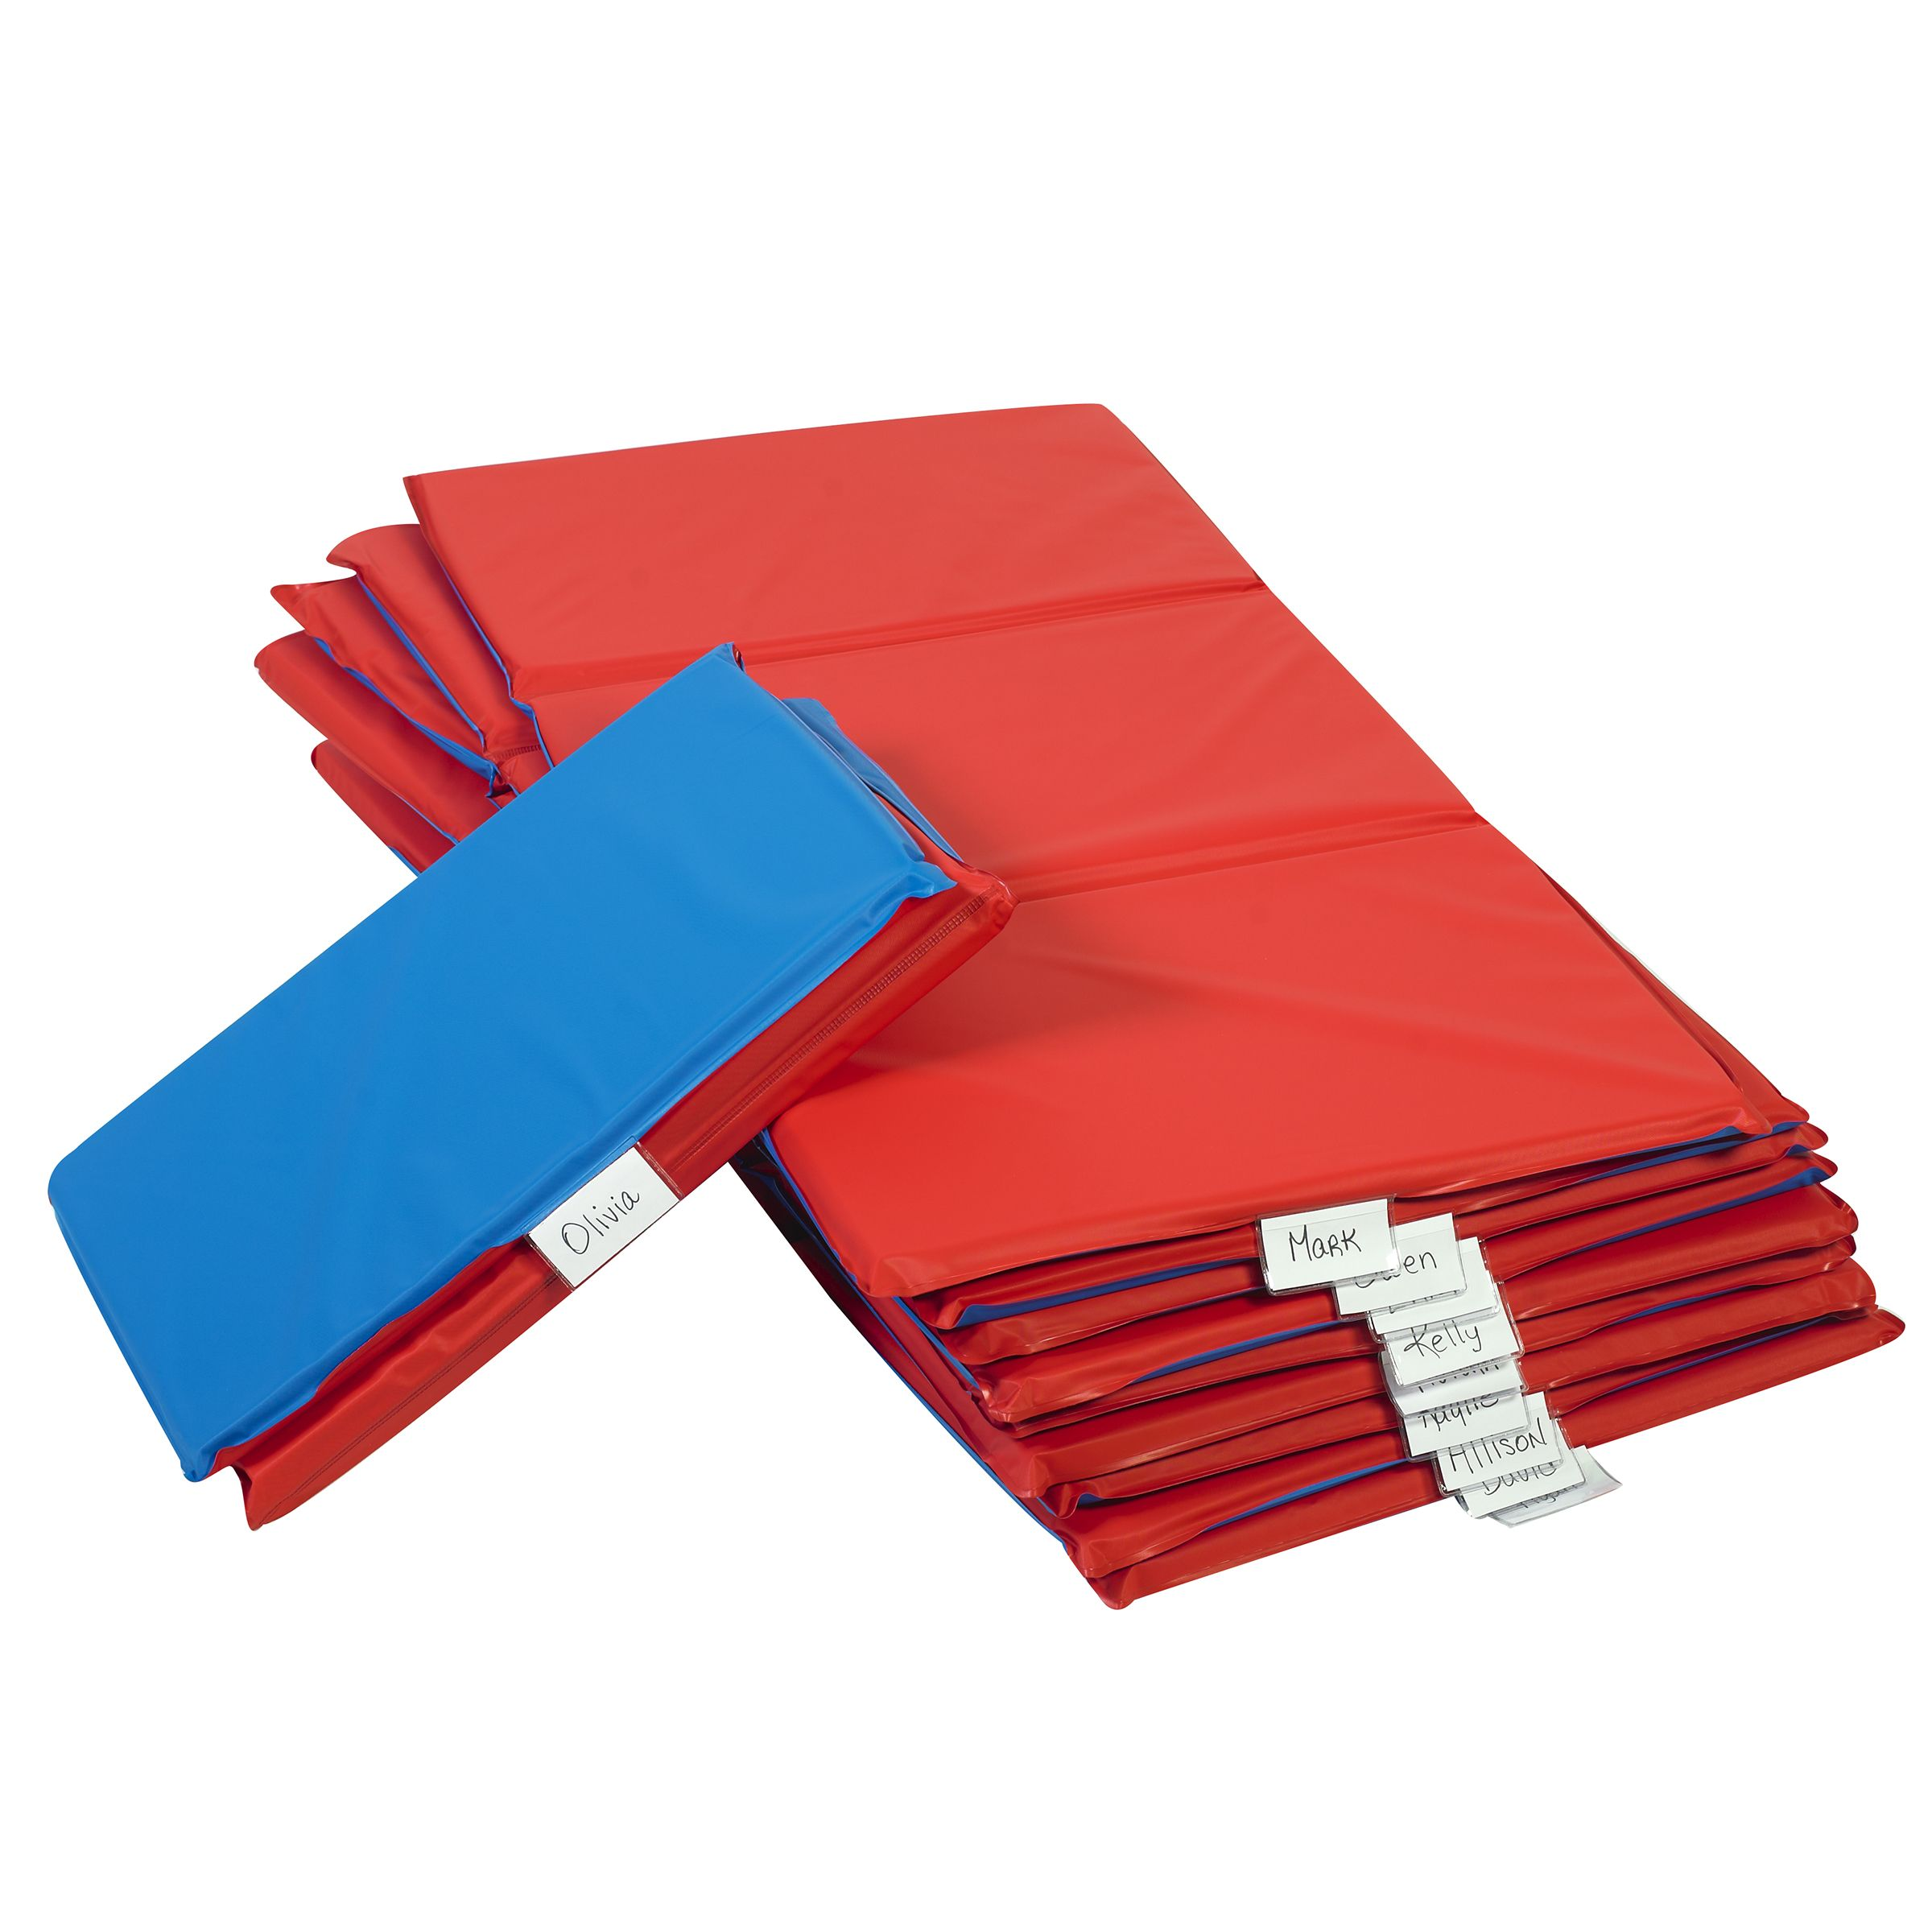 Angels Rest Nap Mat 1 Red Blue 3 Section Folding Mat 10 Pack Children S Factory Nap Mat Red And Blue Folding Mat